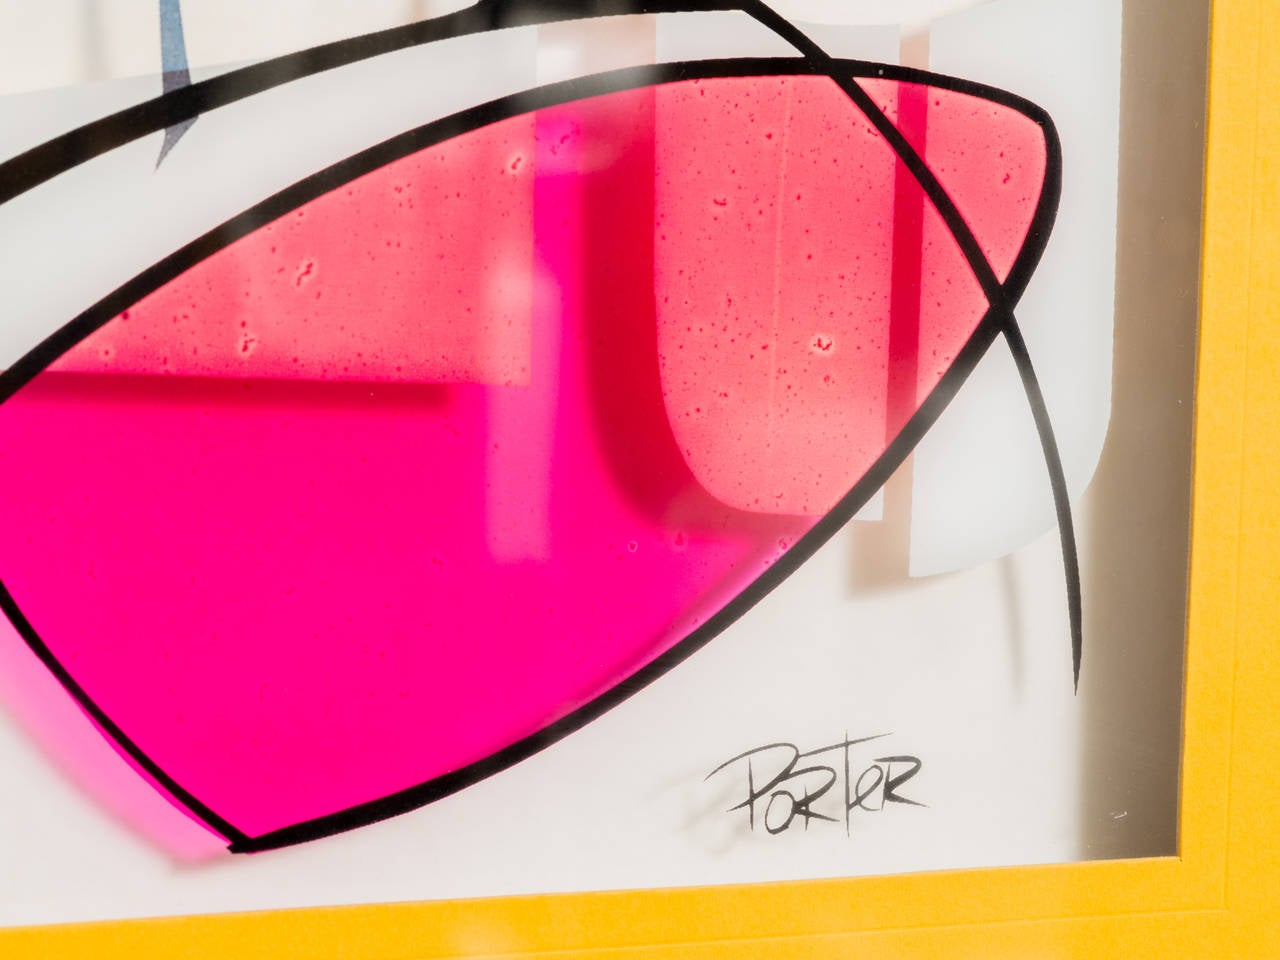 Modernist Serigraph on Glass 3-D geometric abstract featuring yellow and pink highlights on multiple layers of glass.